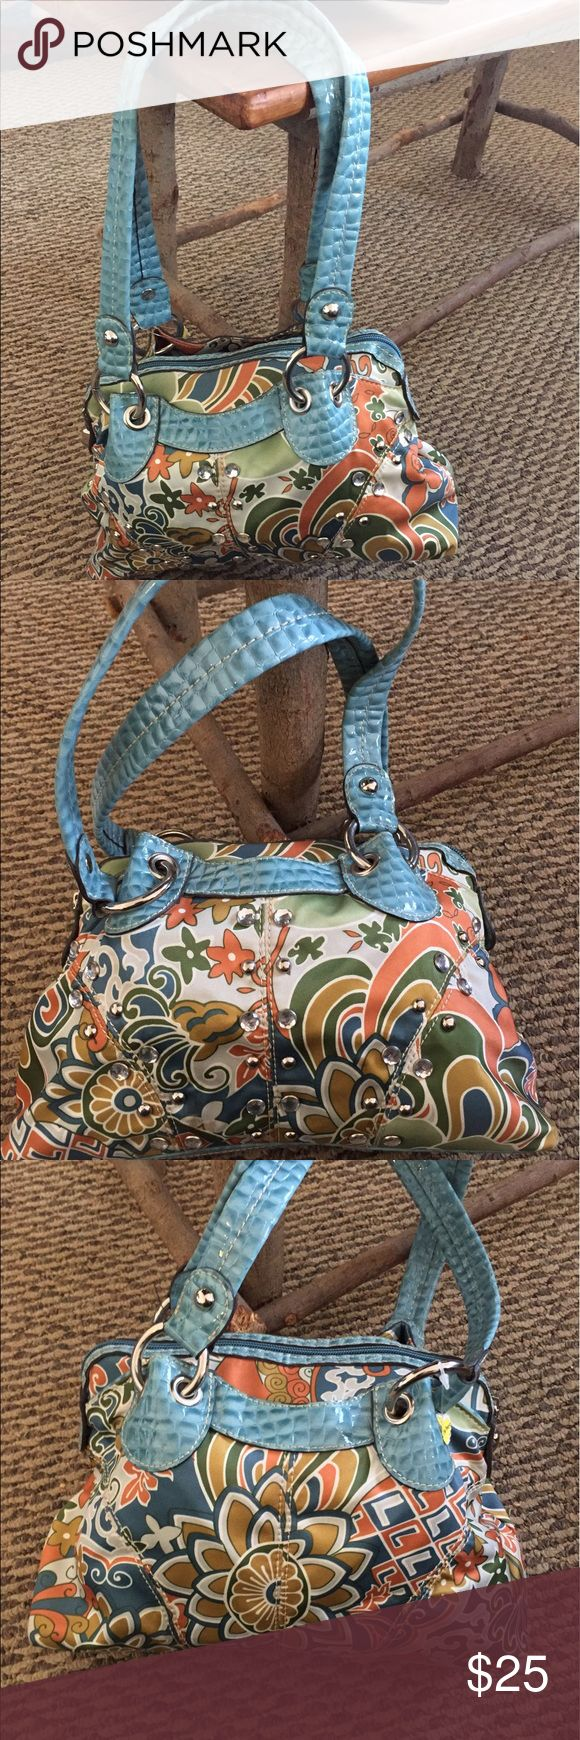 Kathy Van Zeeland shoulder bag. Beautiful colors. Kathy Van Zeeland shoulder bag. Beautiful colors of turquoise, gold, green & tangerine. Two outside pockets. Lining is patent leather turquoise. Inside zippered pocket and card slots. Kathy Van Zeeland Bags Shoulder Bags